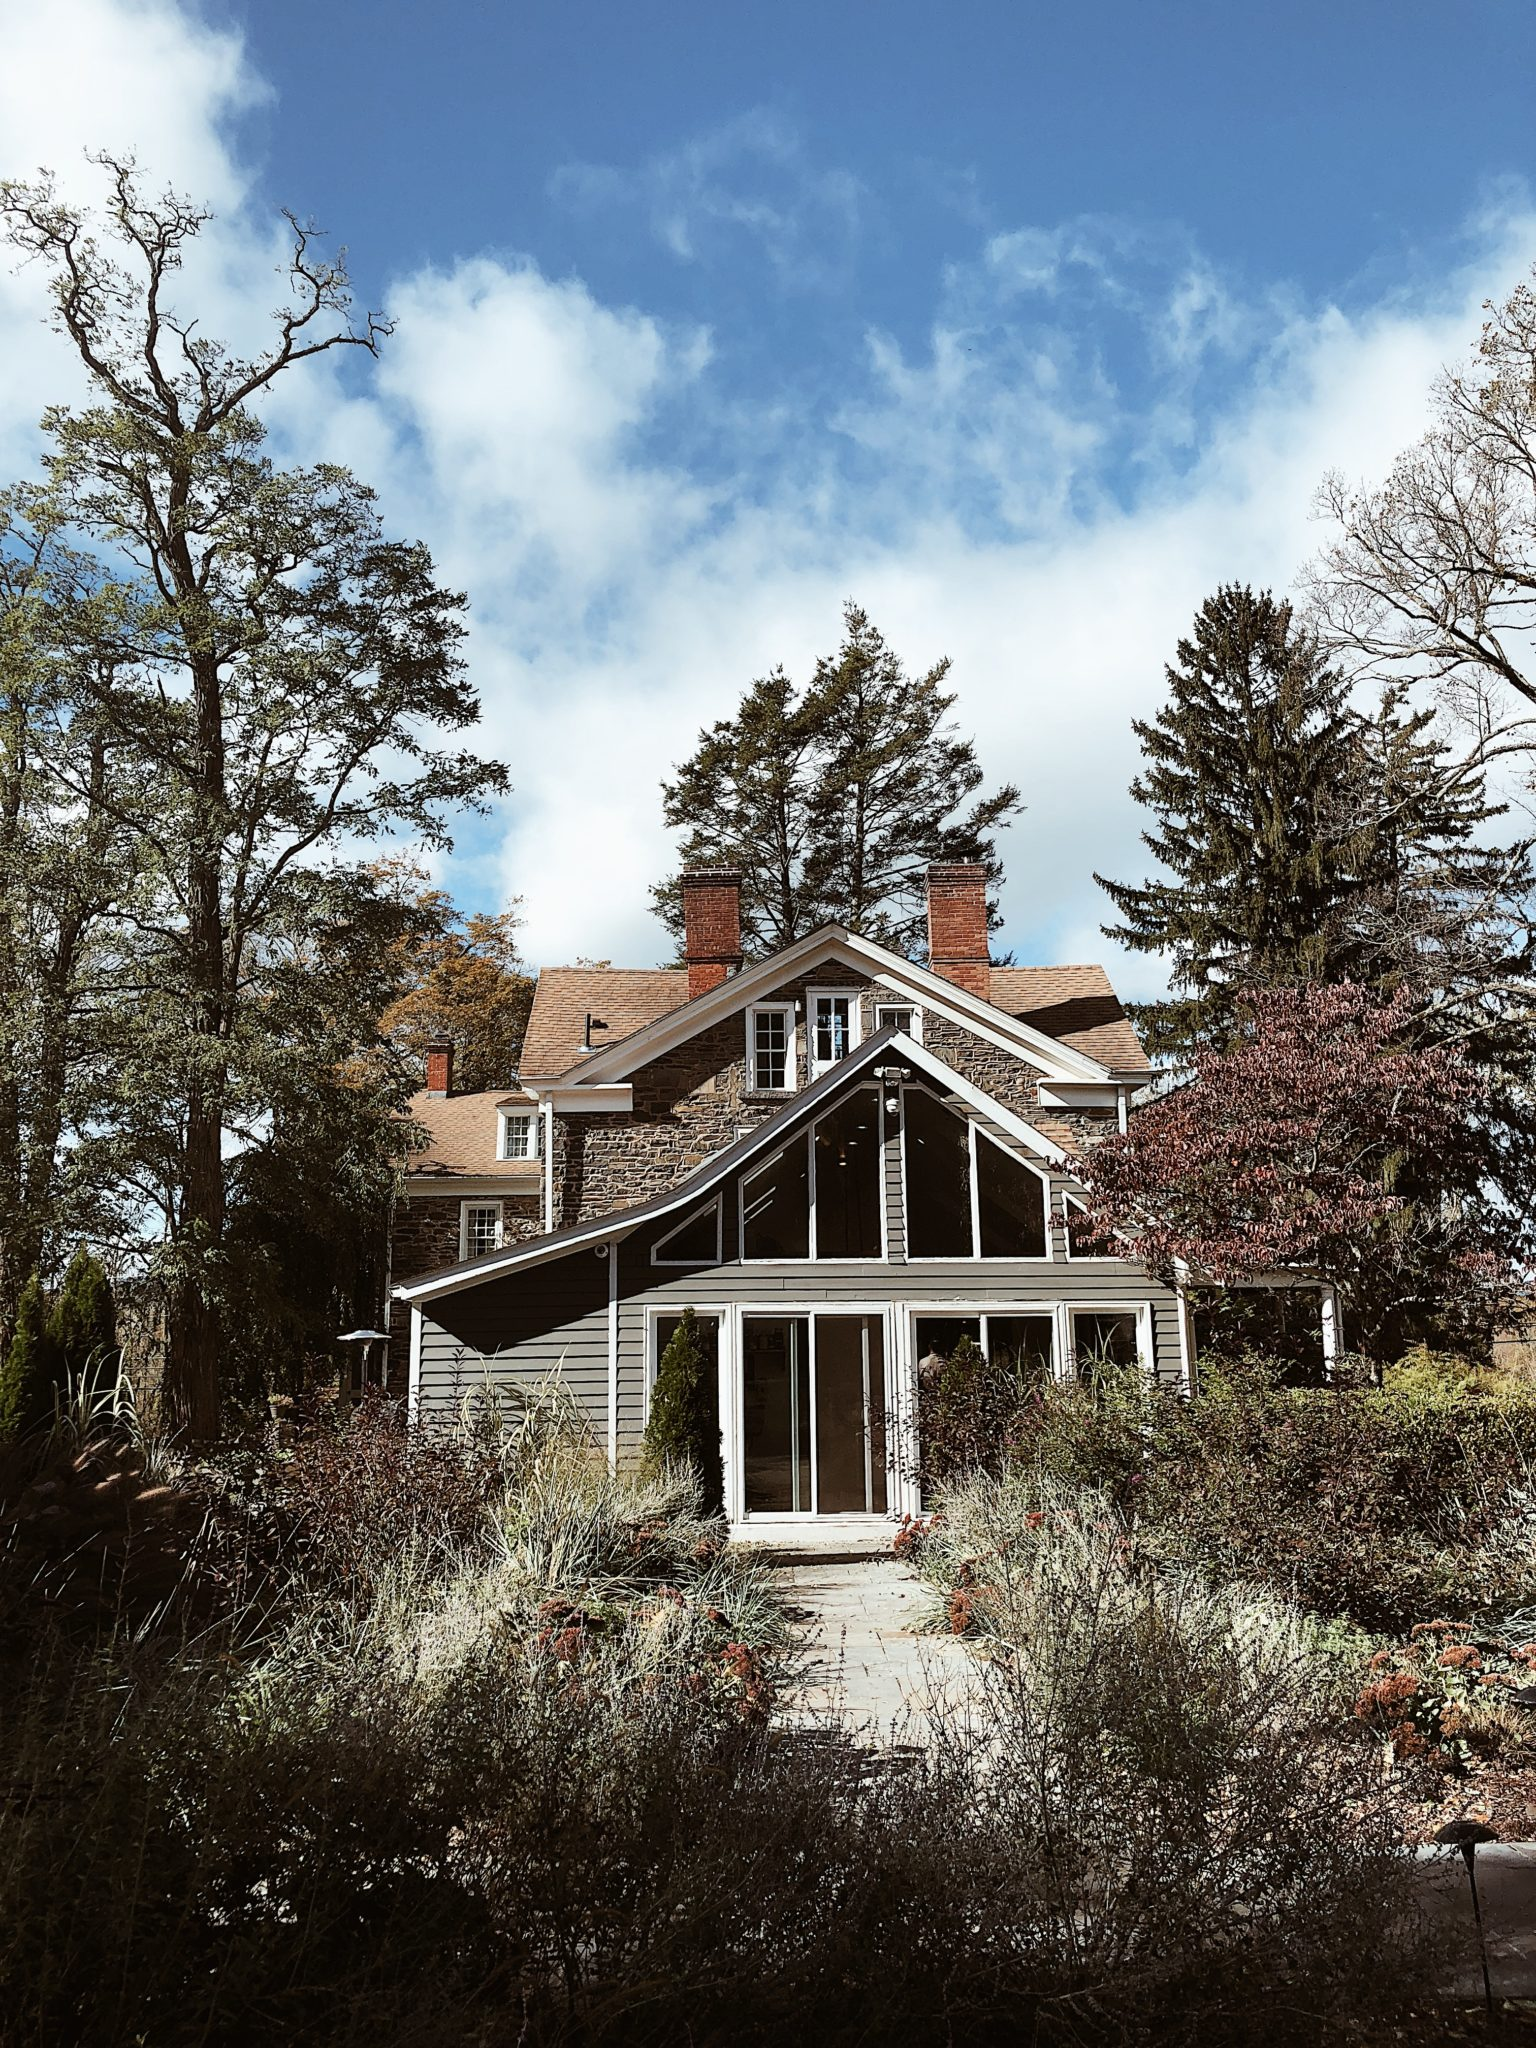 Hasbrouck House Upstate New York | WORLD OF WANDERLUST